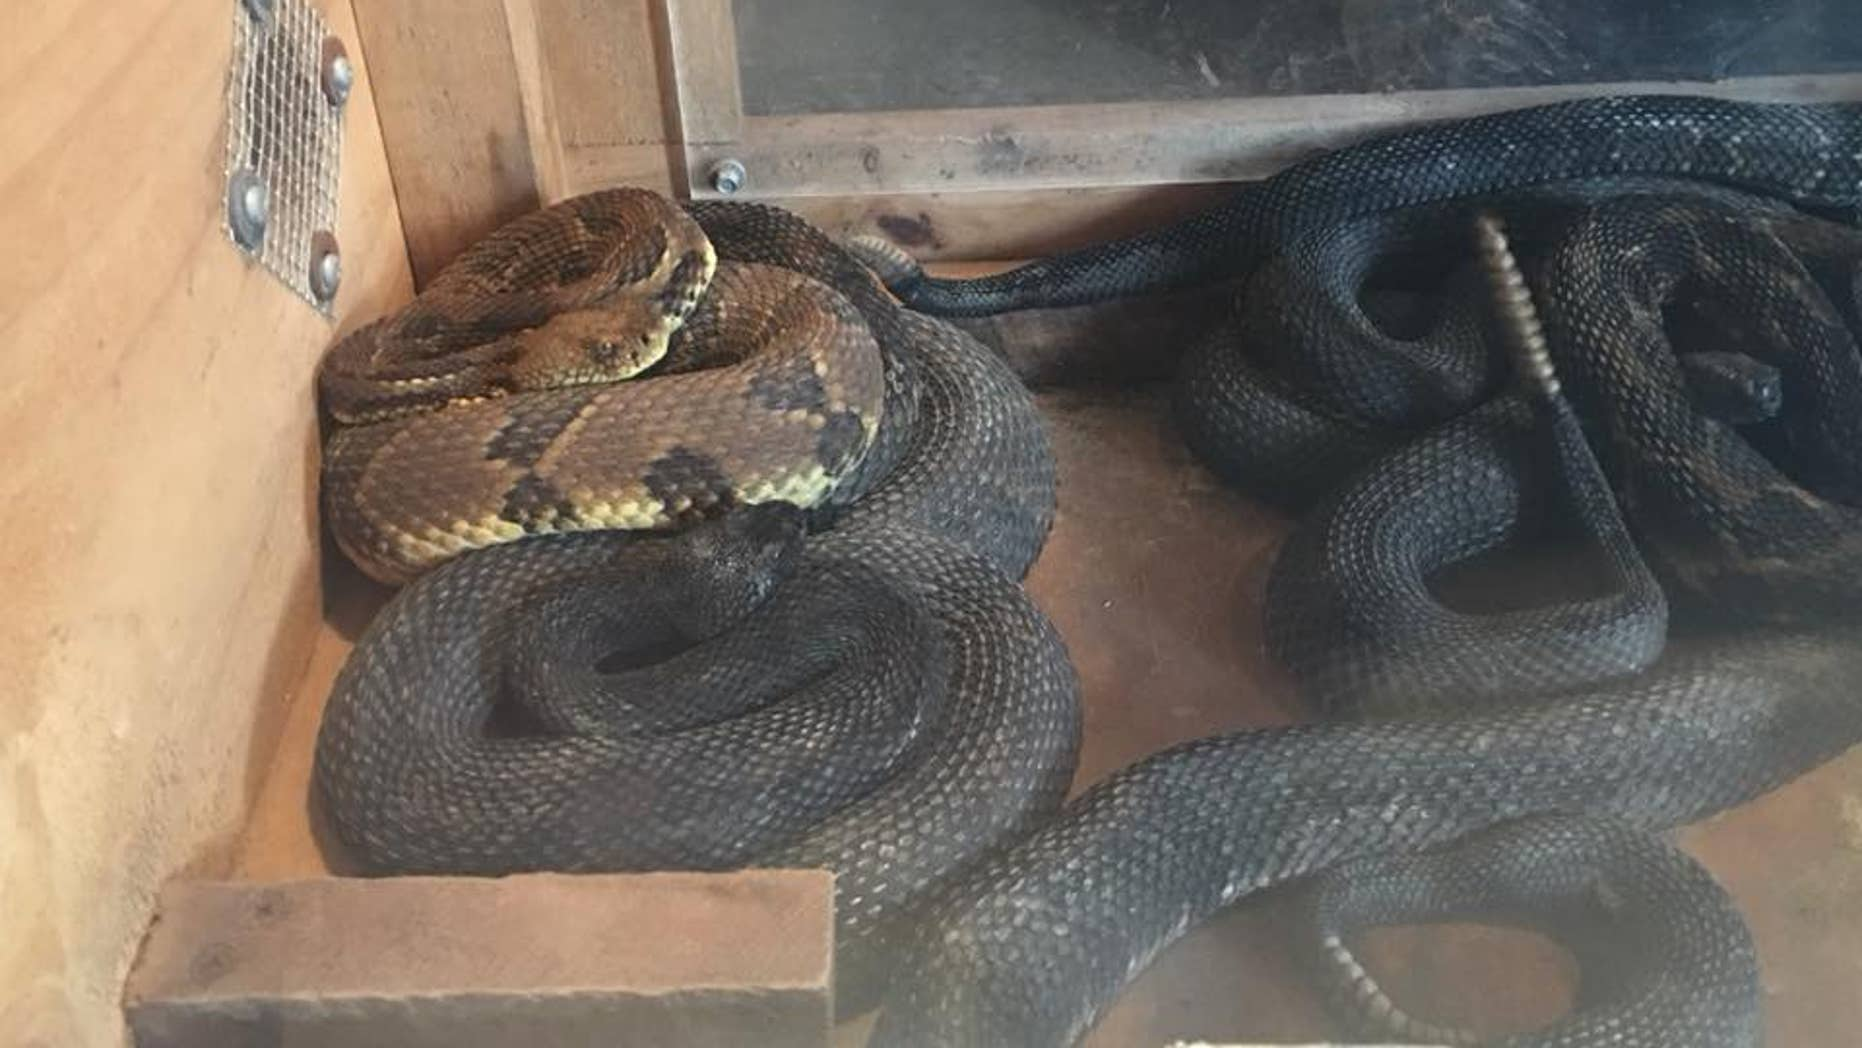 The man, who has not yet been named, was arrested and charged after officials found 17 rattlesnakes in his home.